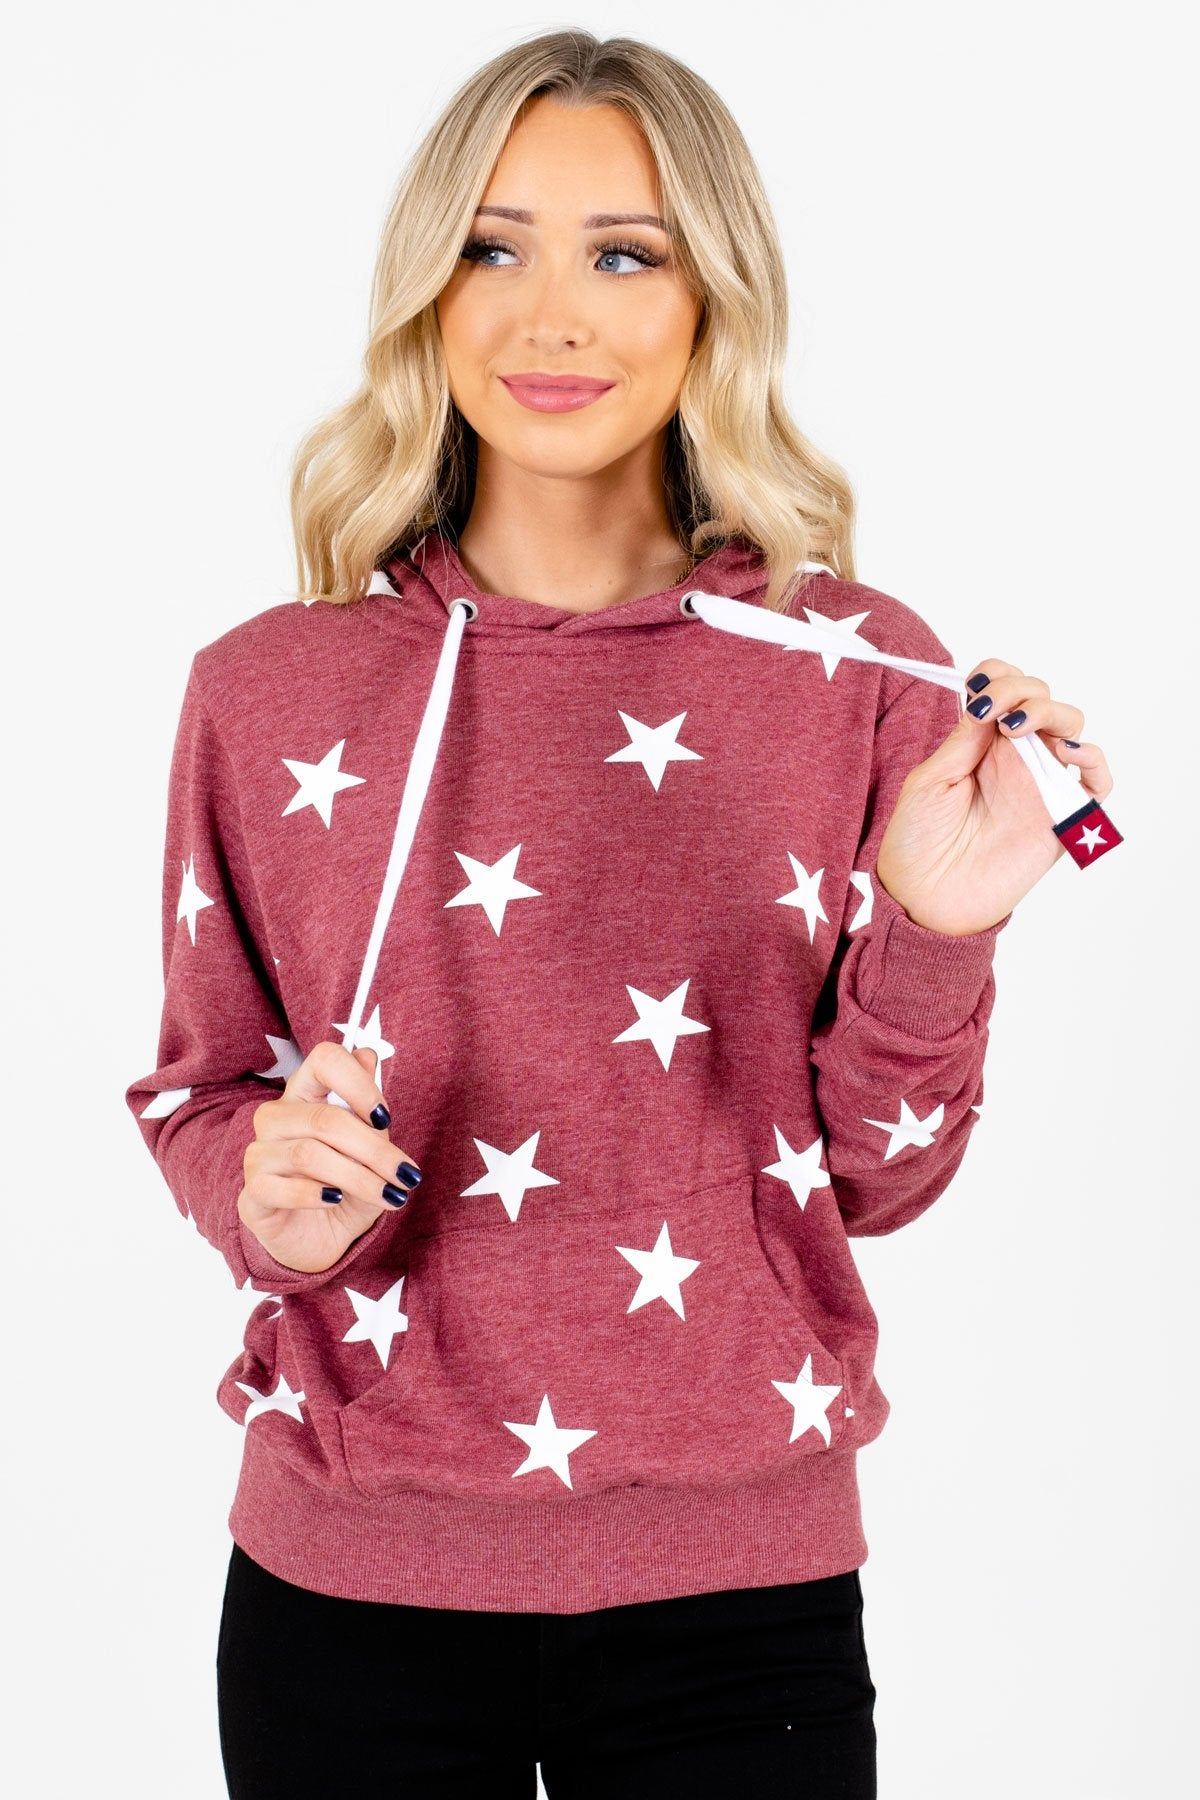 Brick Red and White Star Patterned Boutique Hoodies for Women